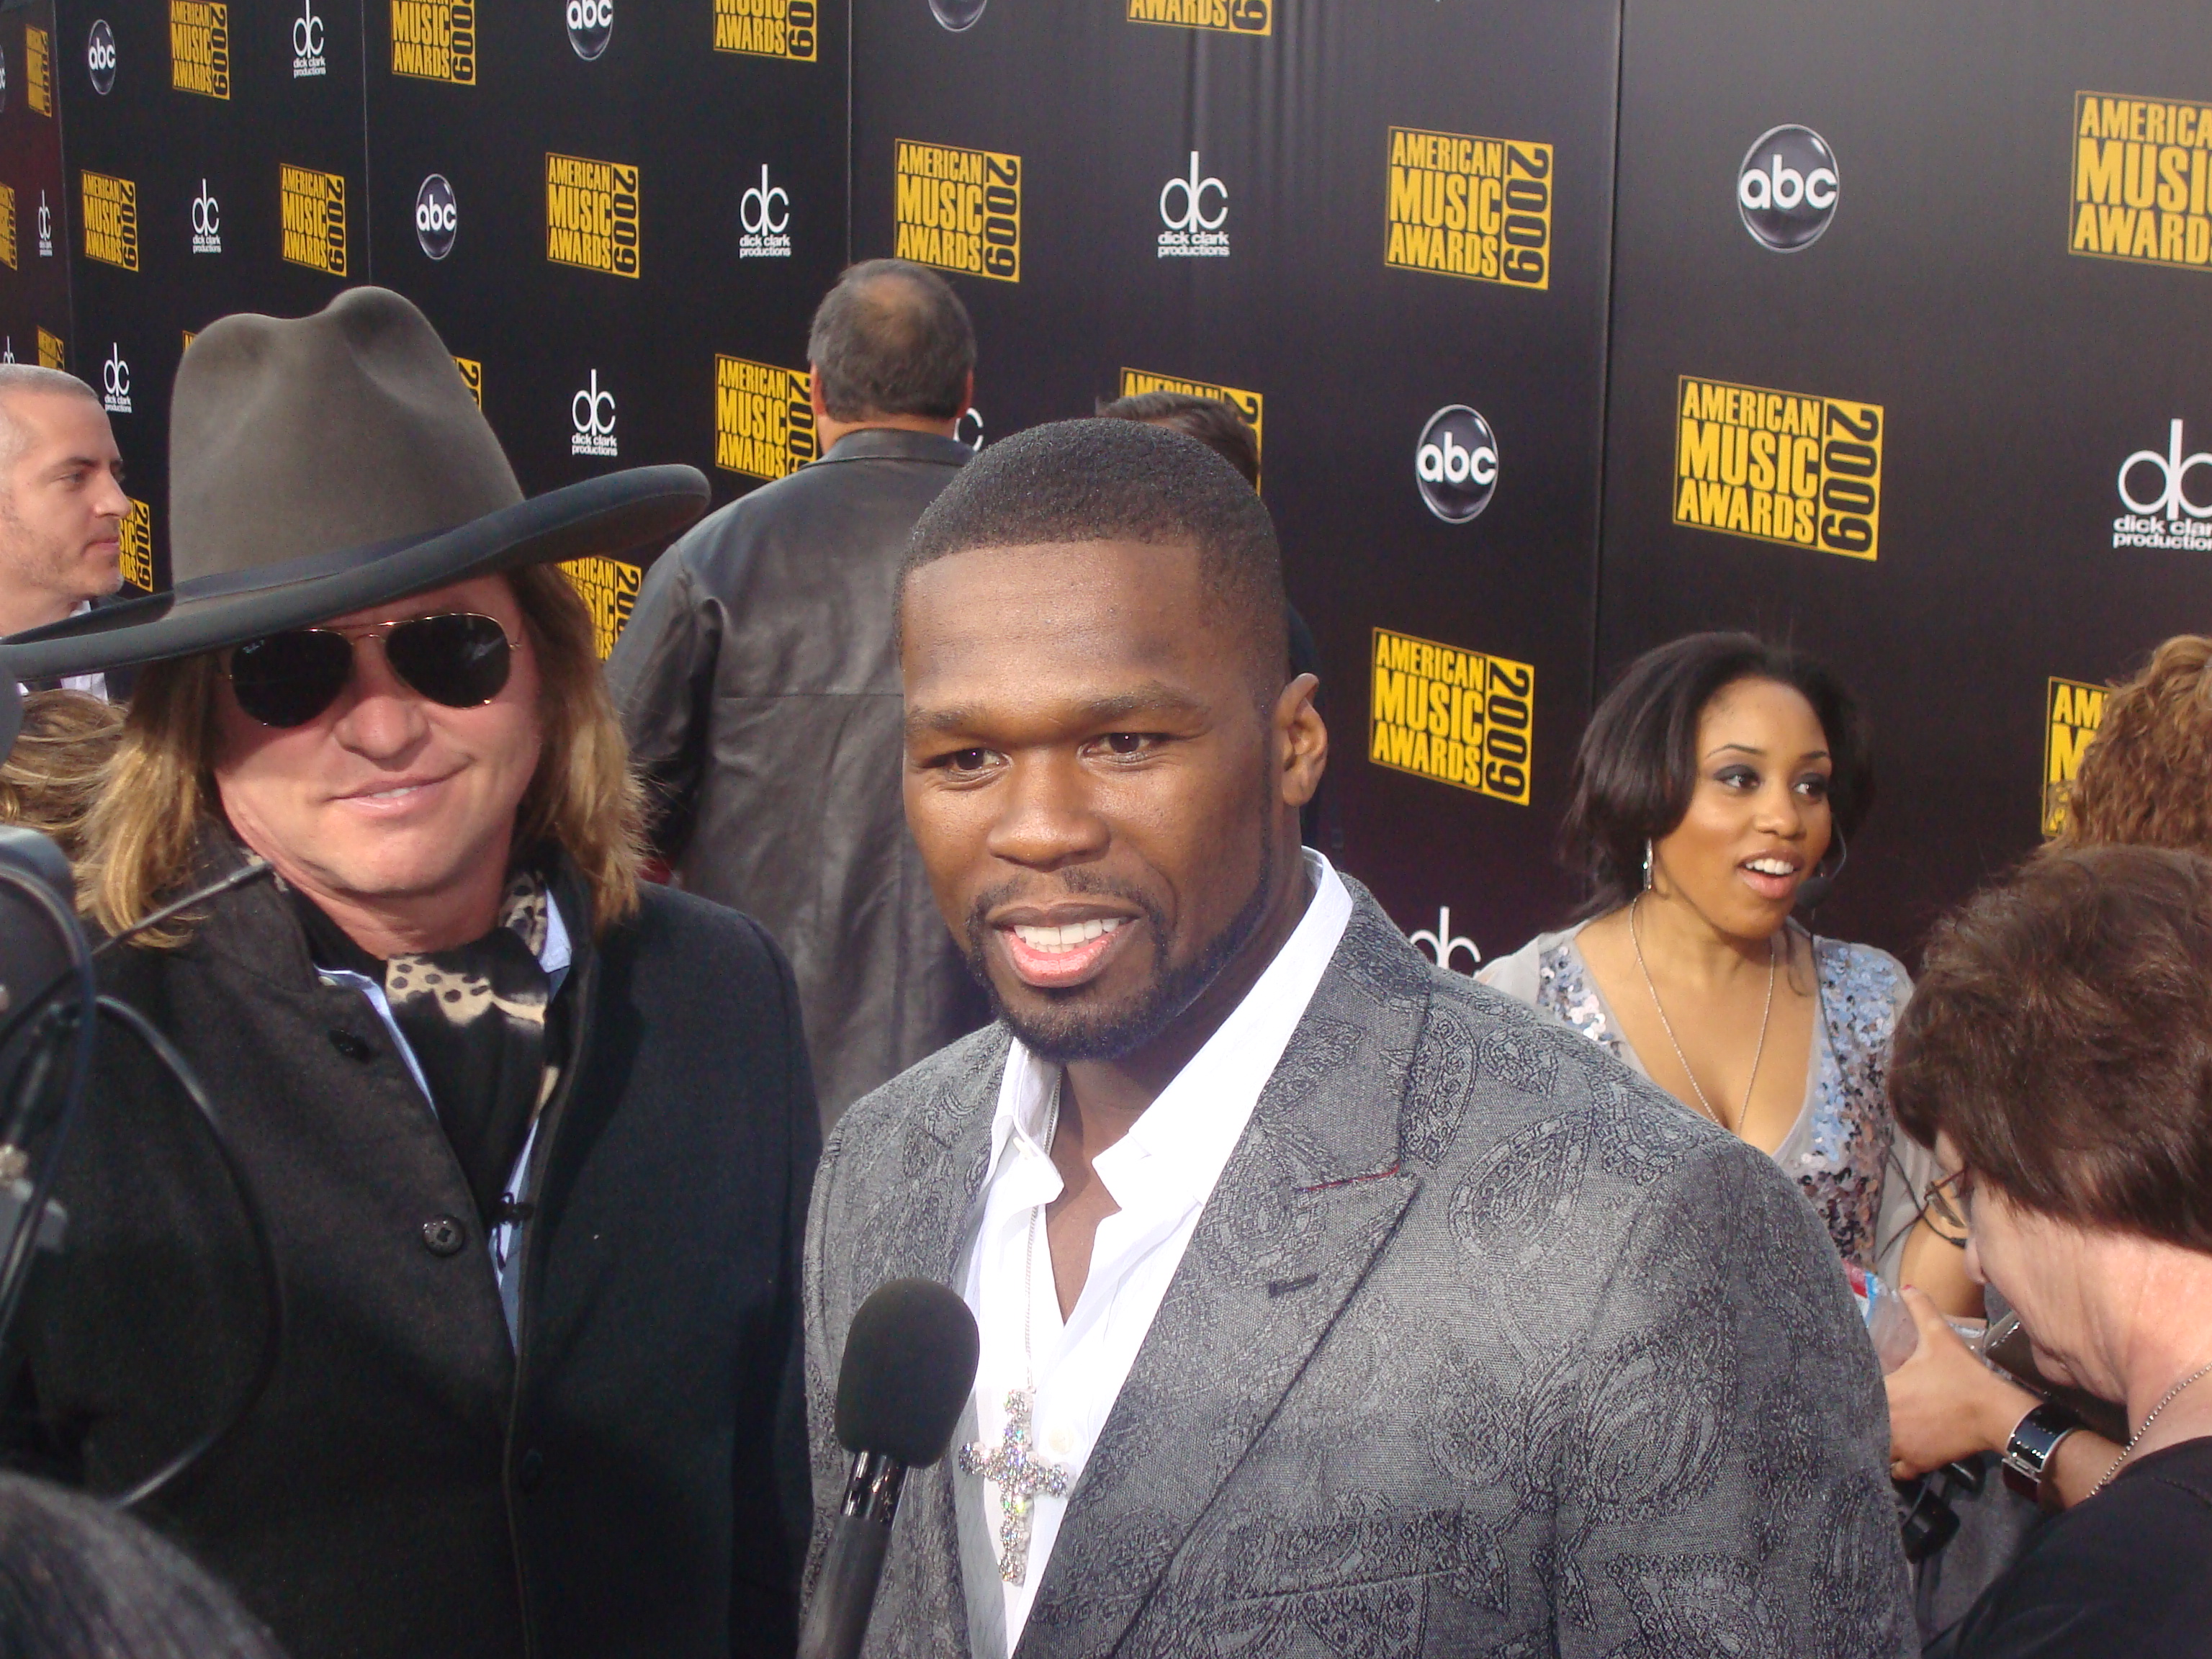 Description Val Kilmer and 50 Cent.jpg